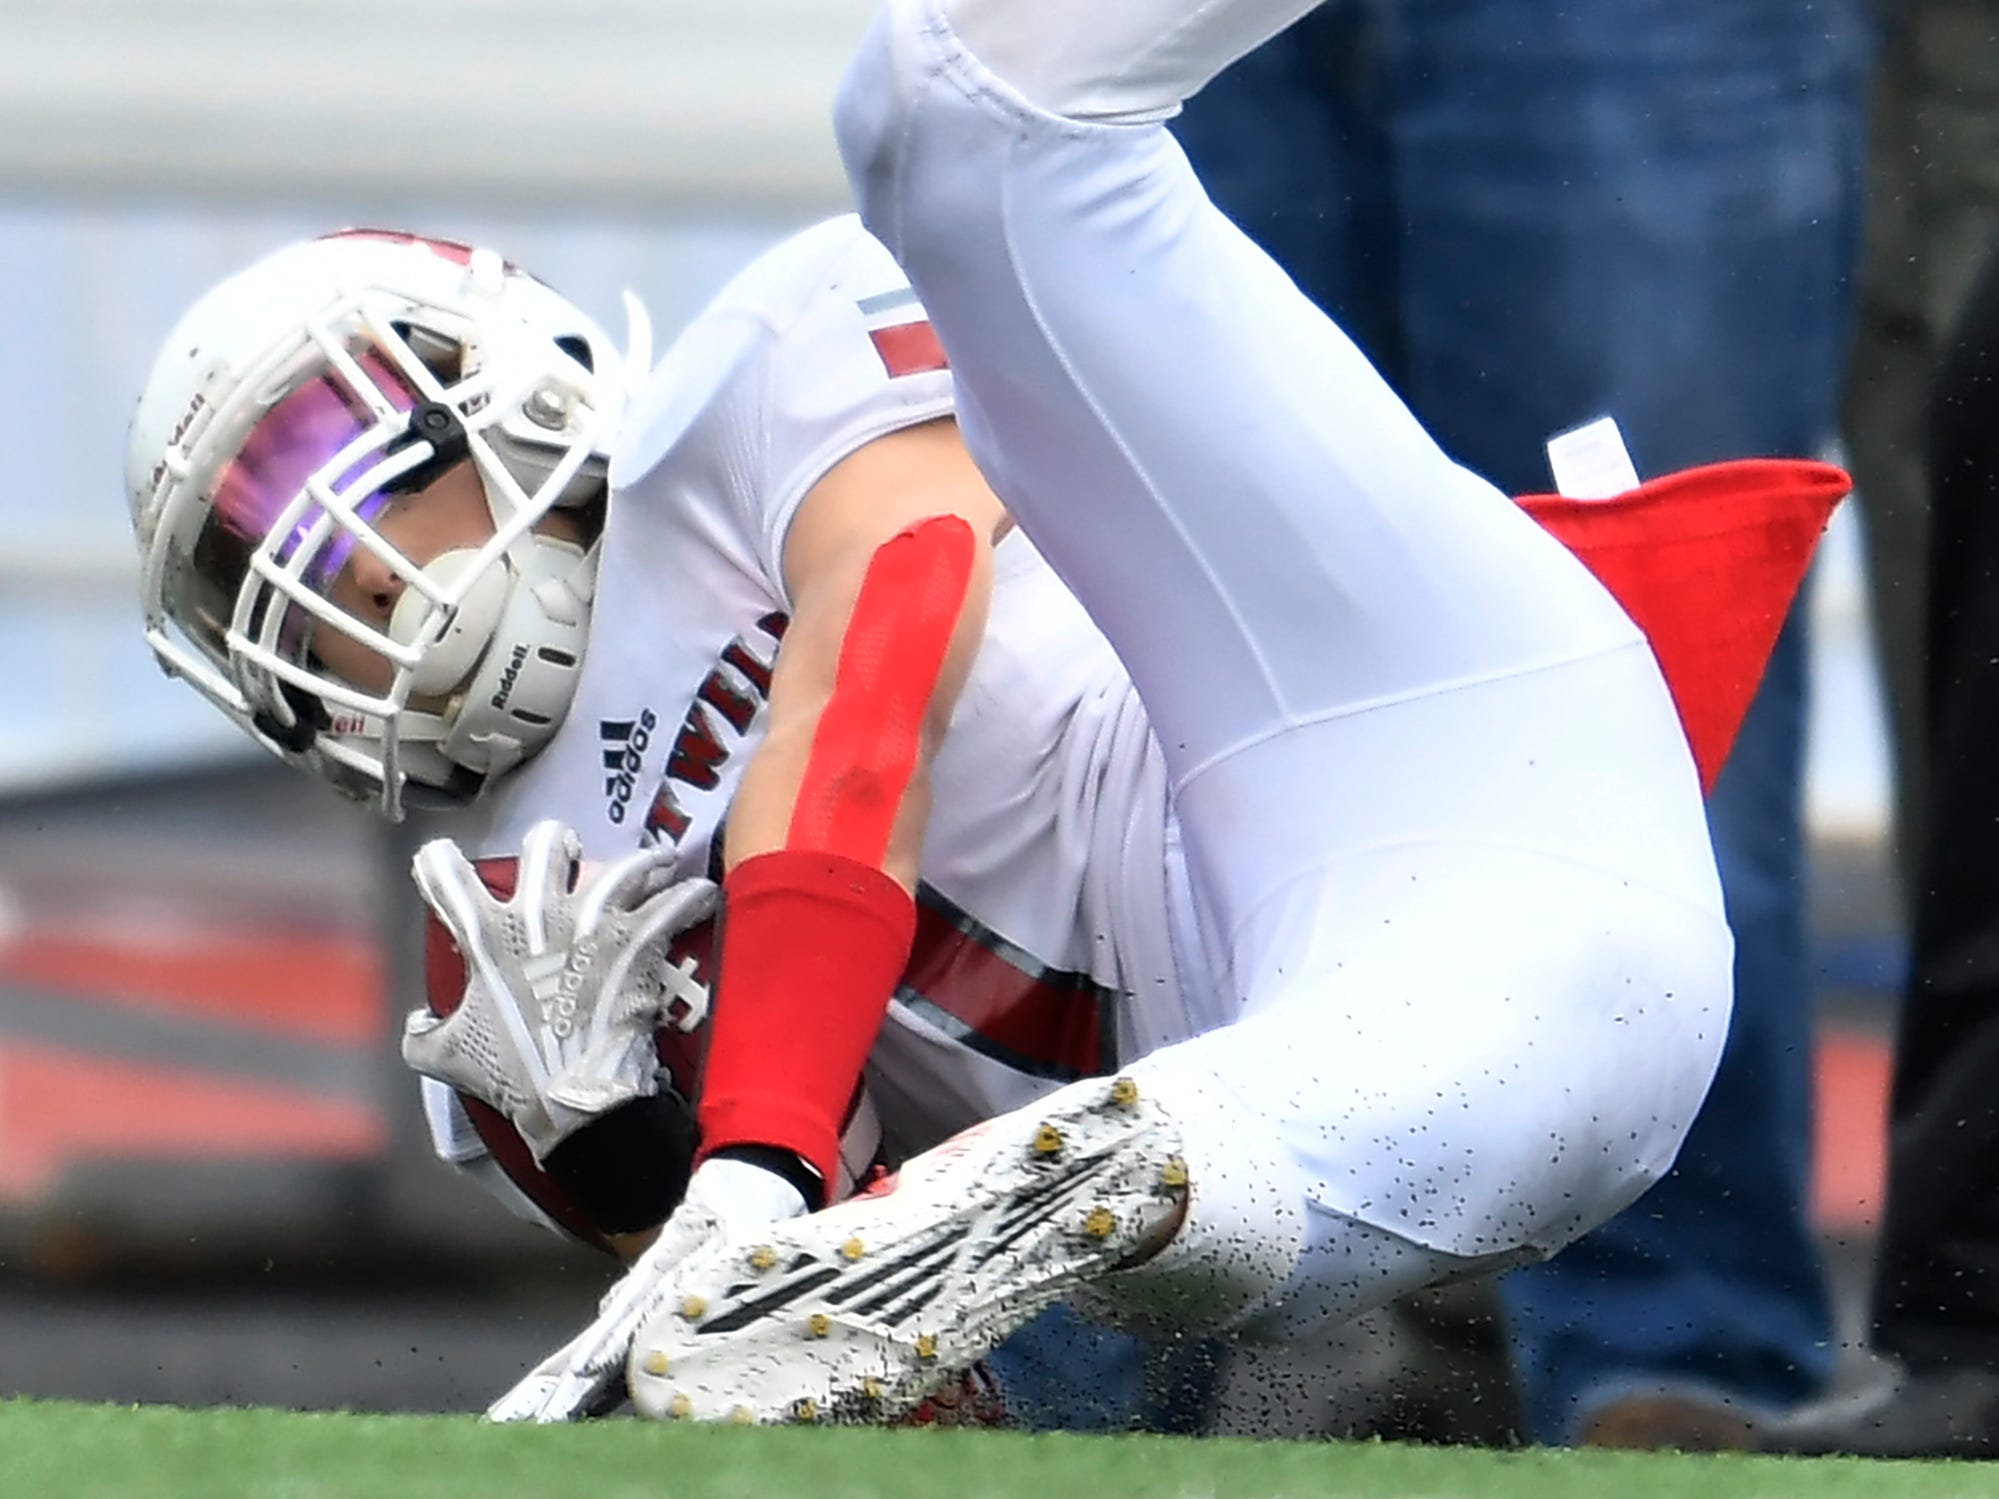 Whitwell defensive back Jaren Thames (7) pulls down an interception in the second quarter at the Class I-A BlueCross Bowl state championship at Tennessee Tech's Tucker Stadium in Cookeville, Tenn., on Saturday, Dec. 1, 2018.